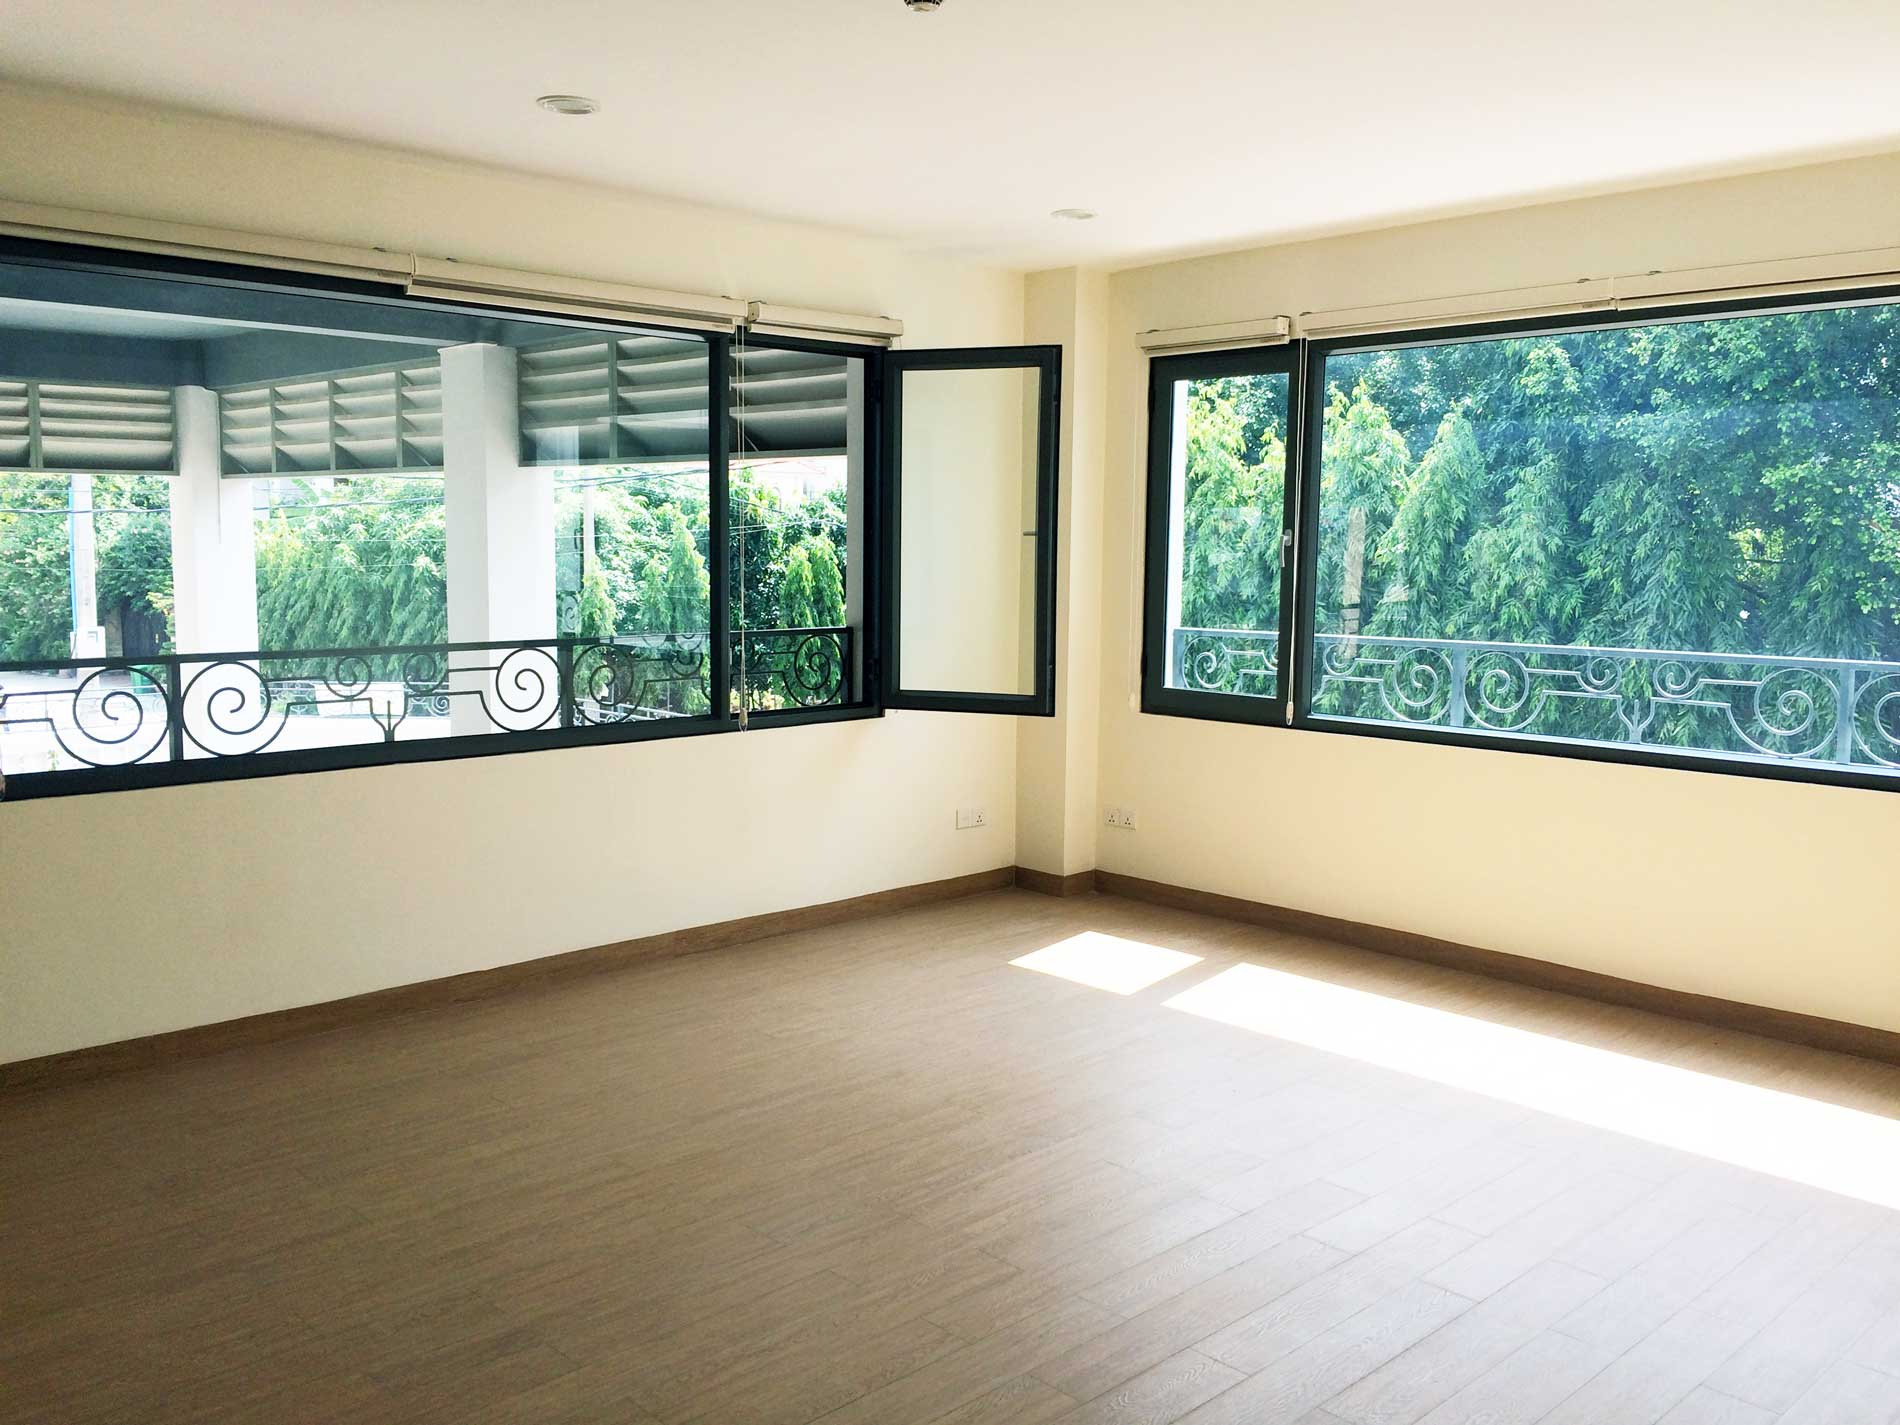 2 Office space 28 m2